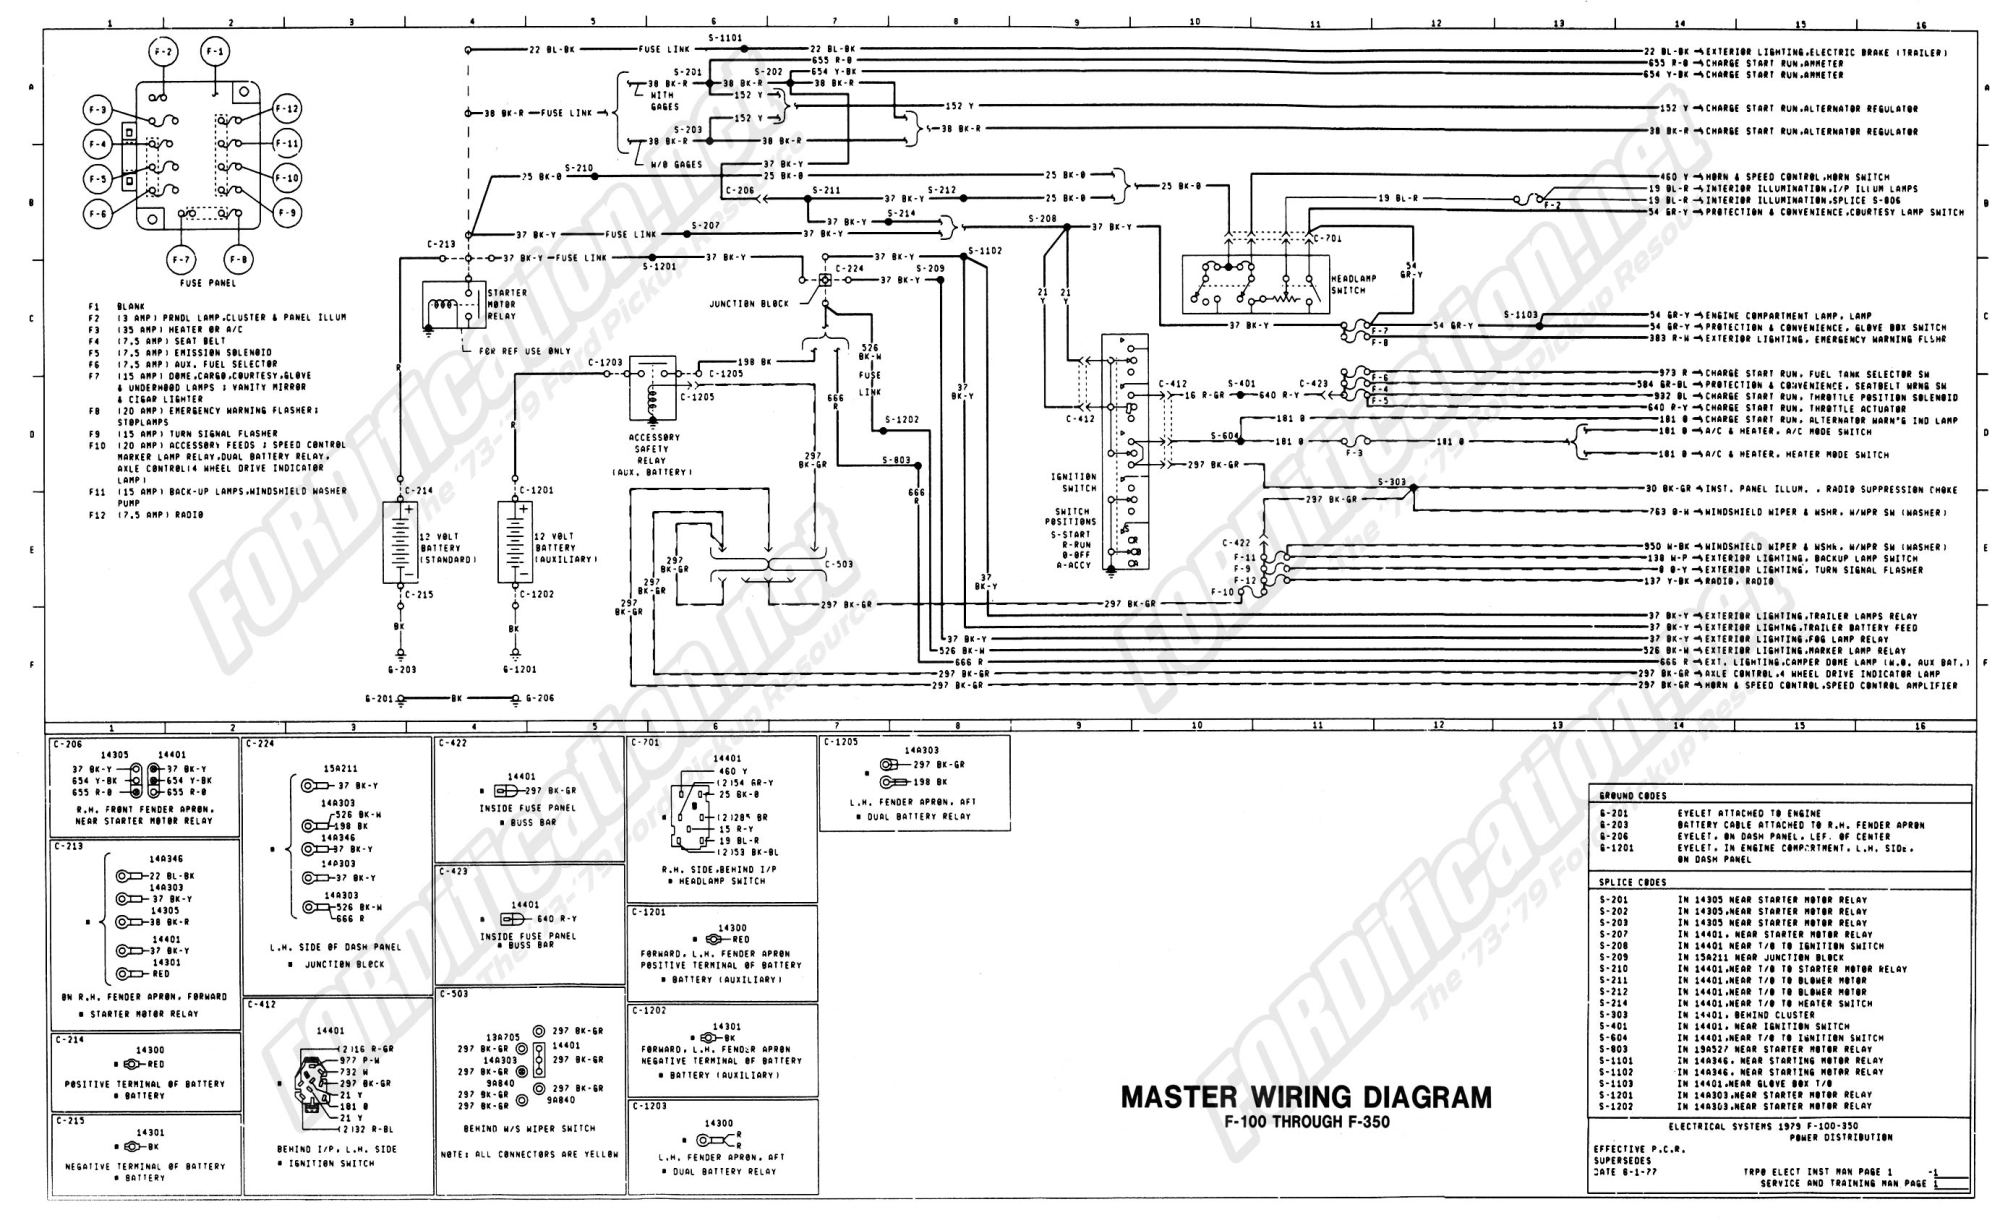 hight resolution of 1973 1979 ford truck wiring diagrams schematics fordification net rh fordification net 1979 chevy truck wiring